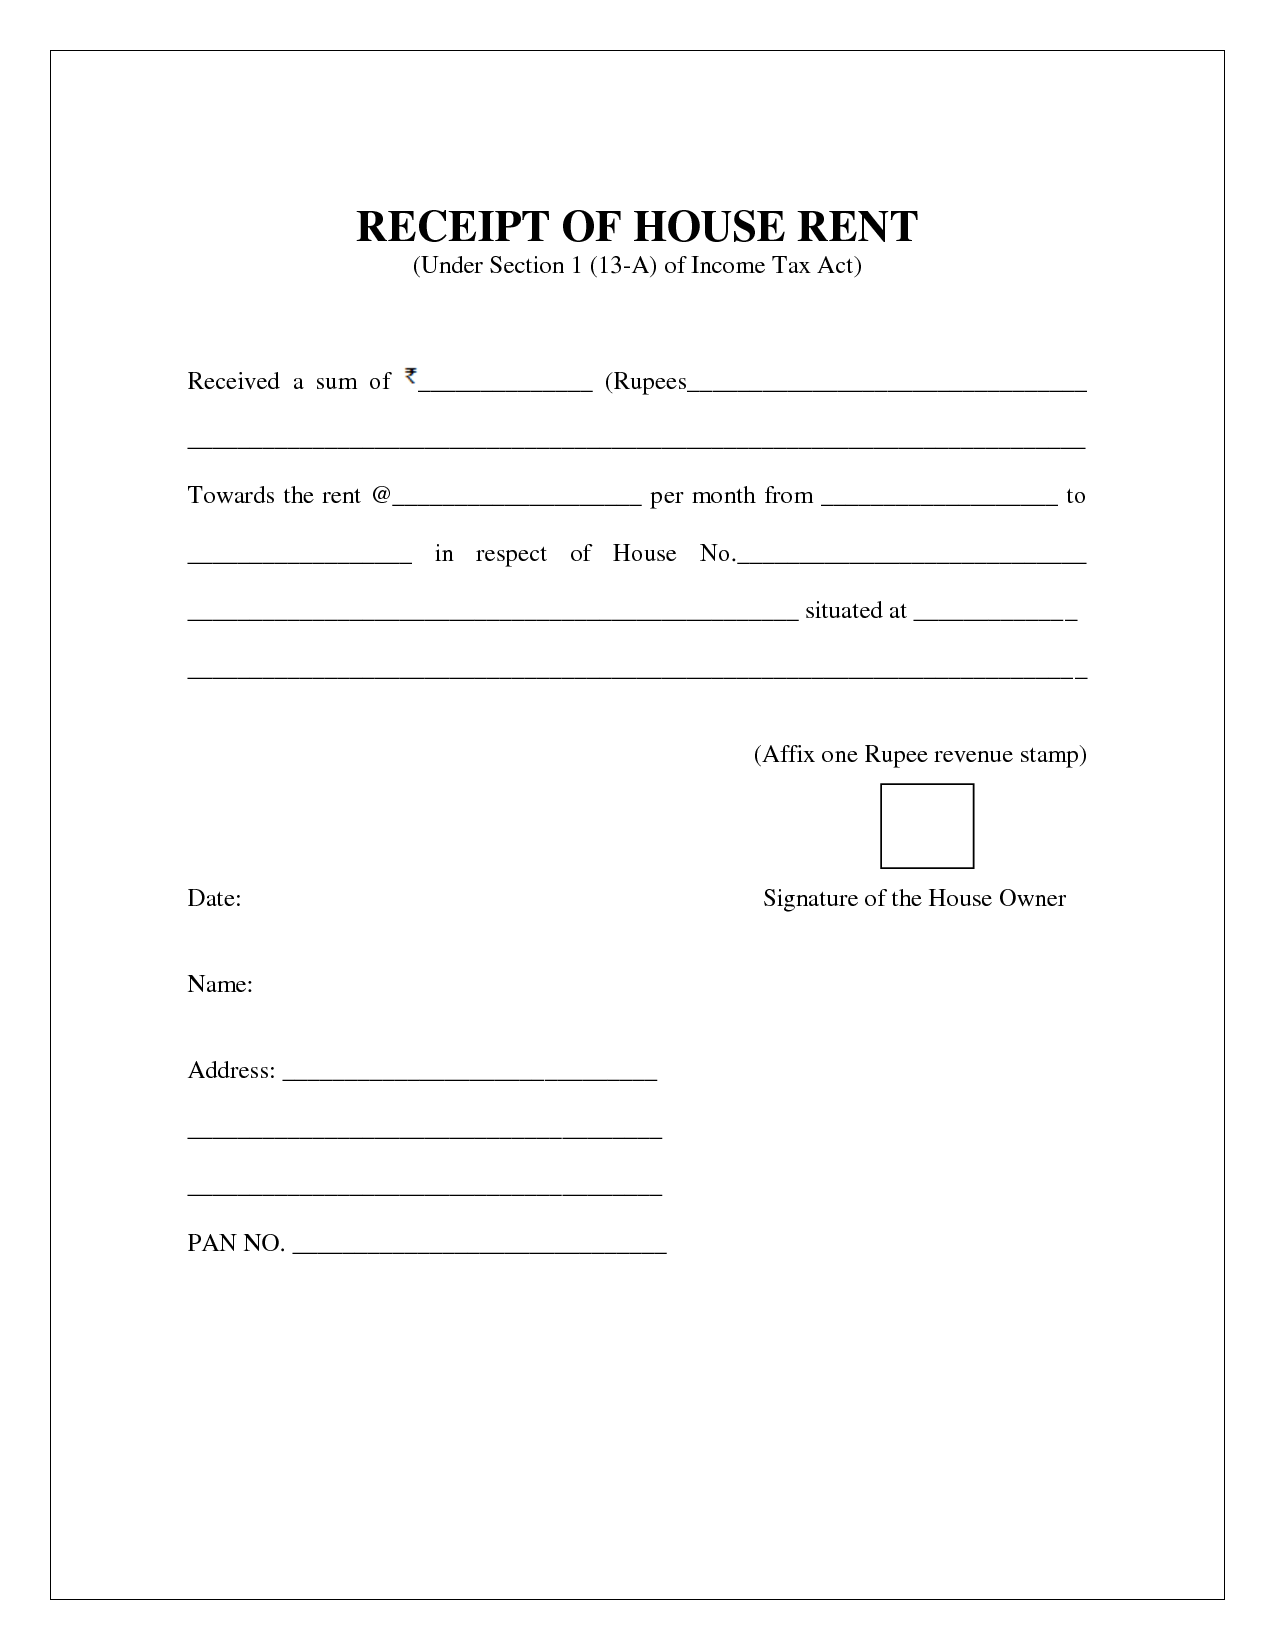 house rental invoice rental receipt sample invoice house rental invoice house rent receipt